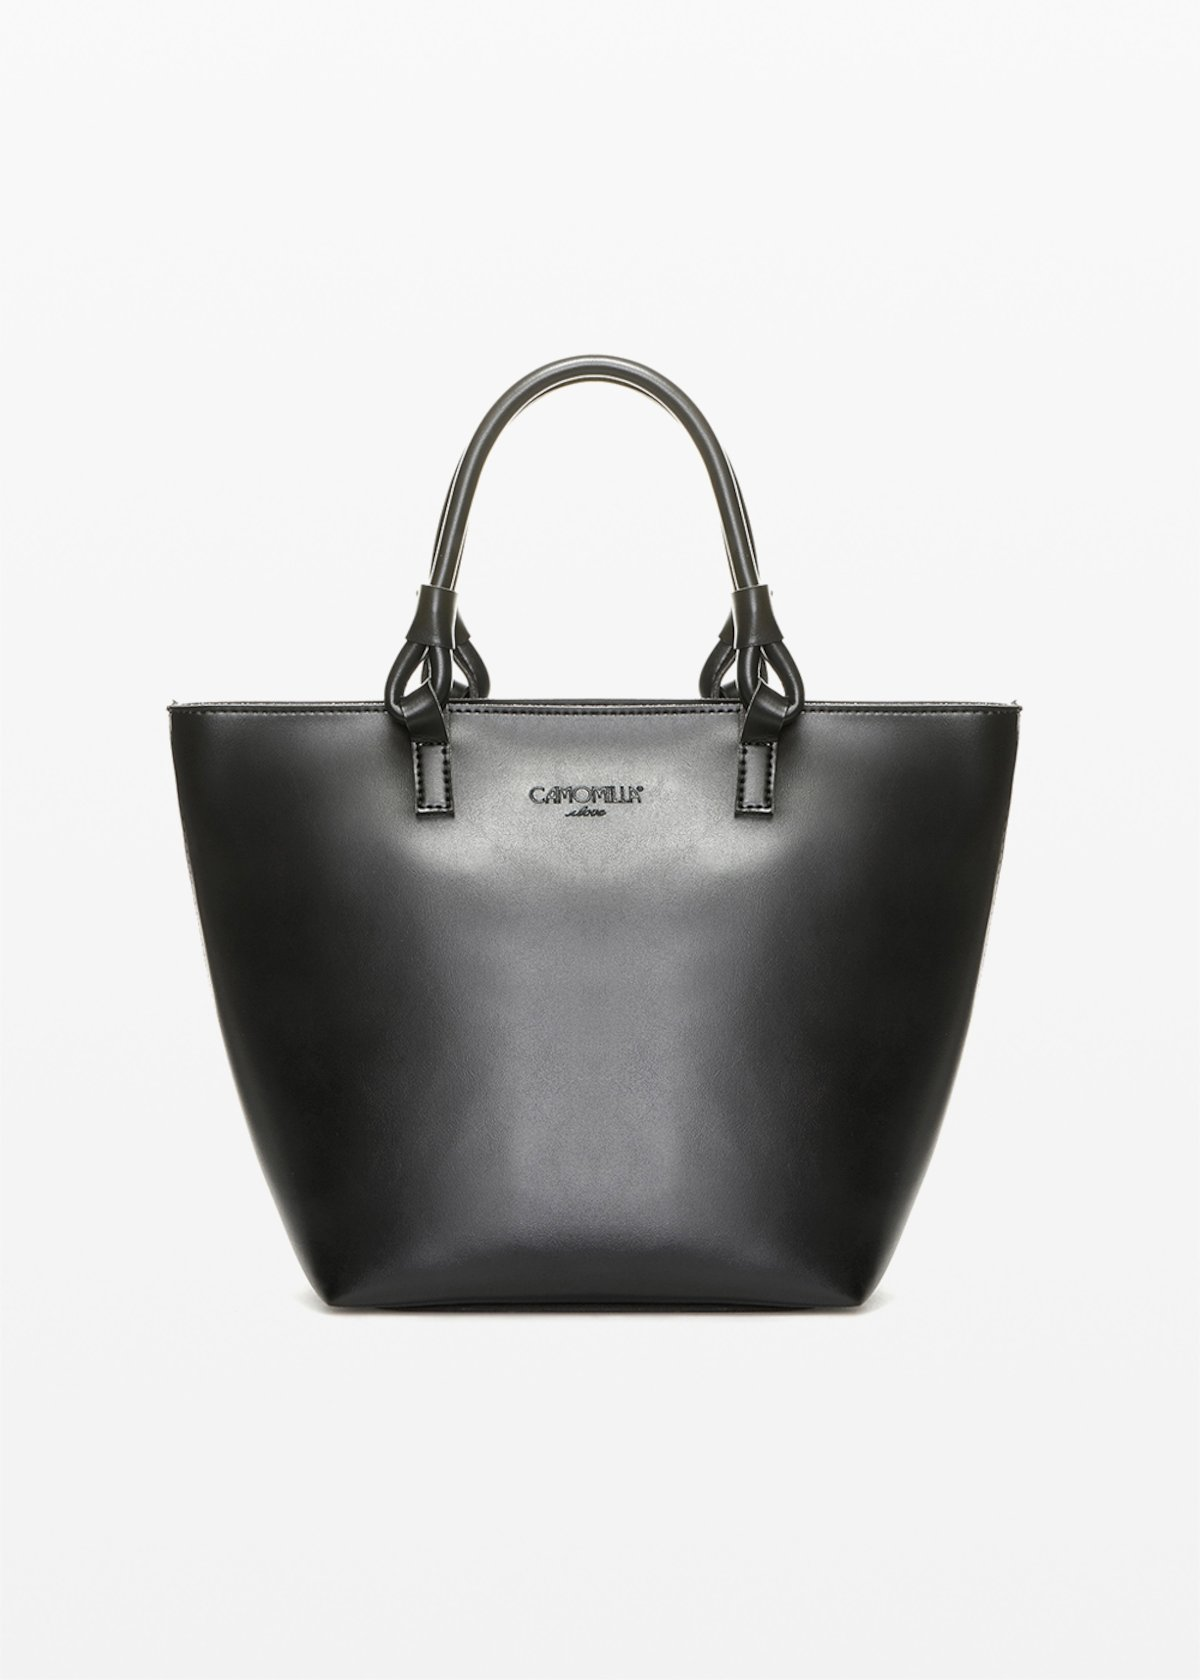 Shopping bag Banna in ecopelle con manici ad anello - Black